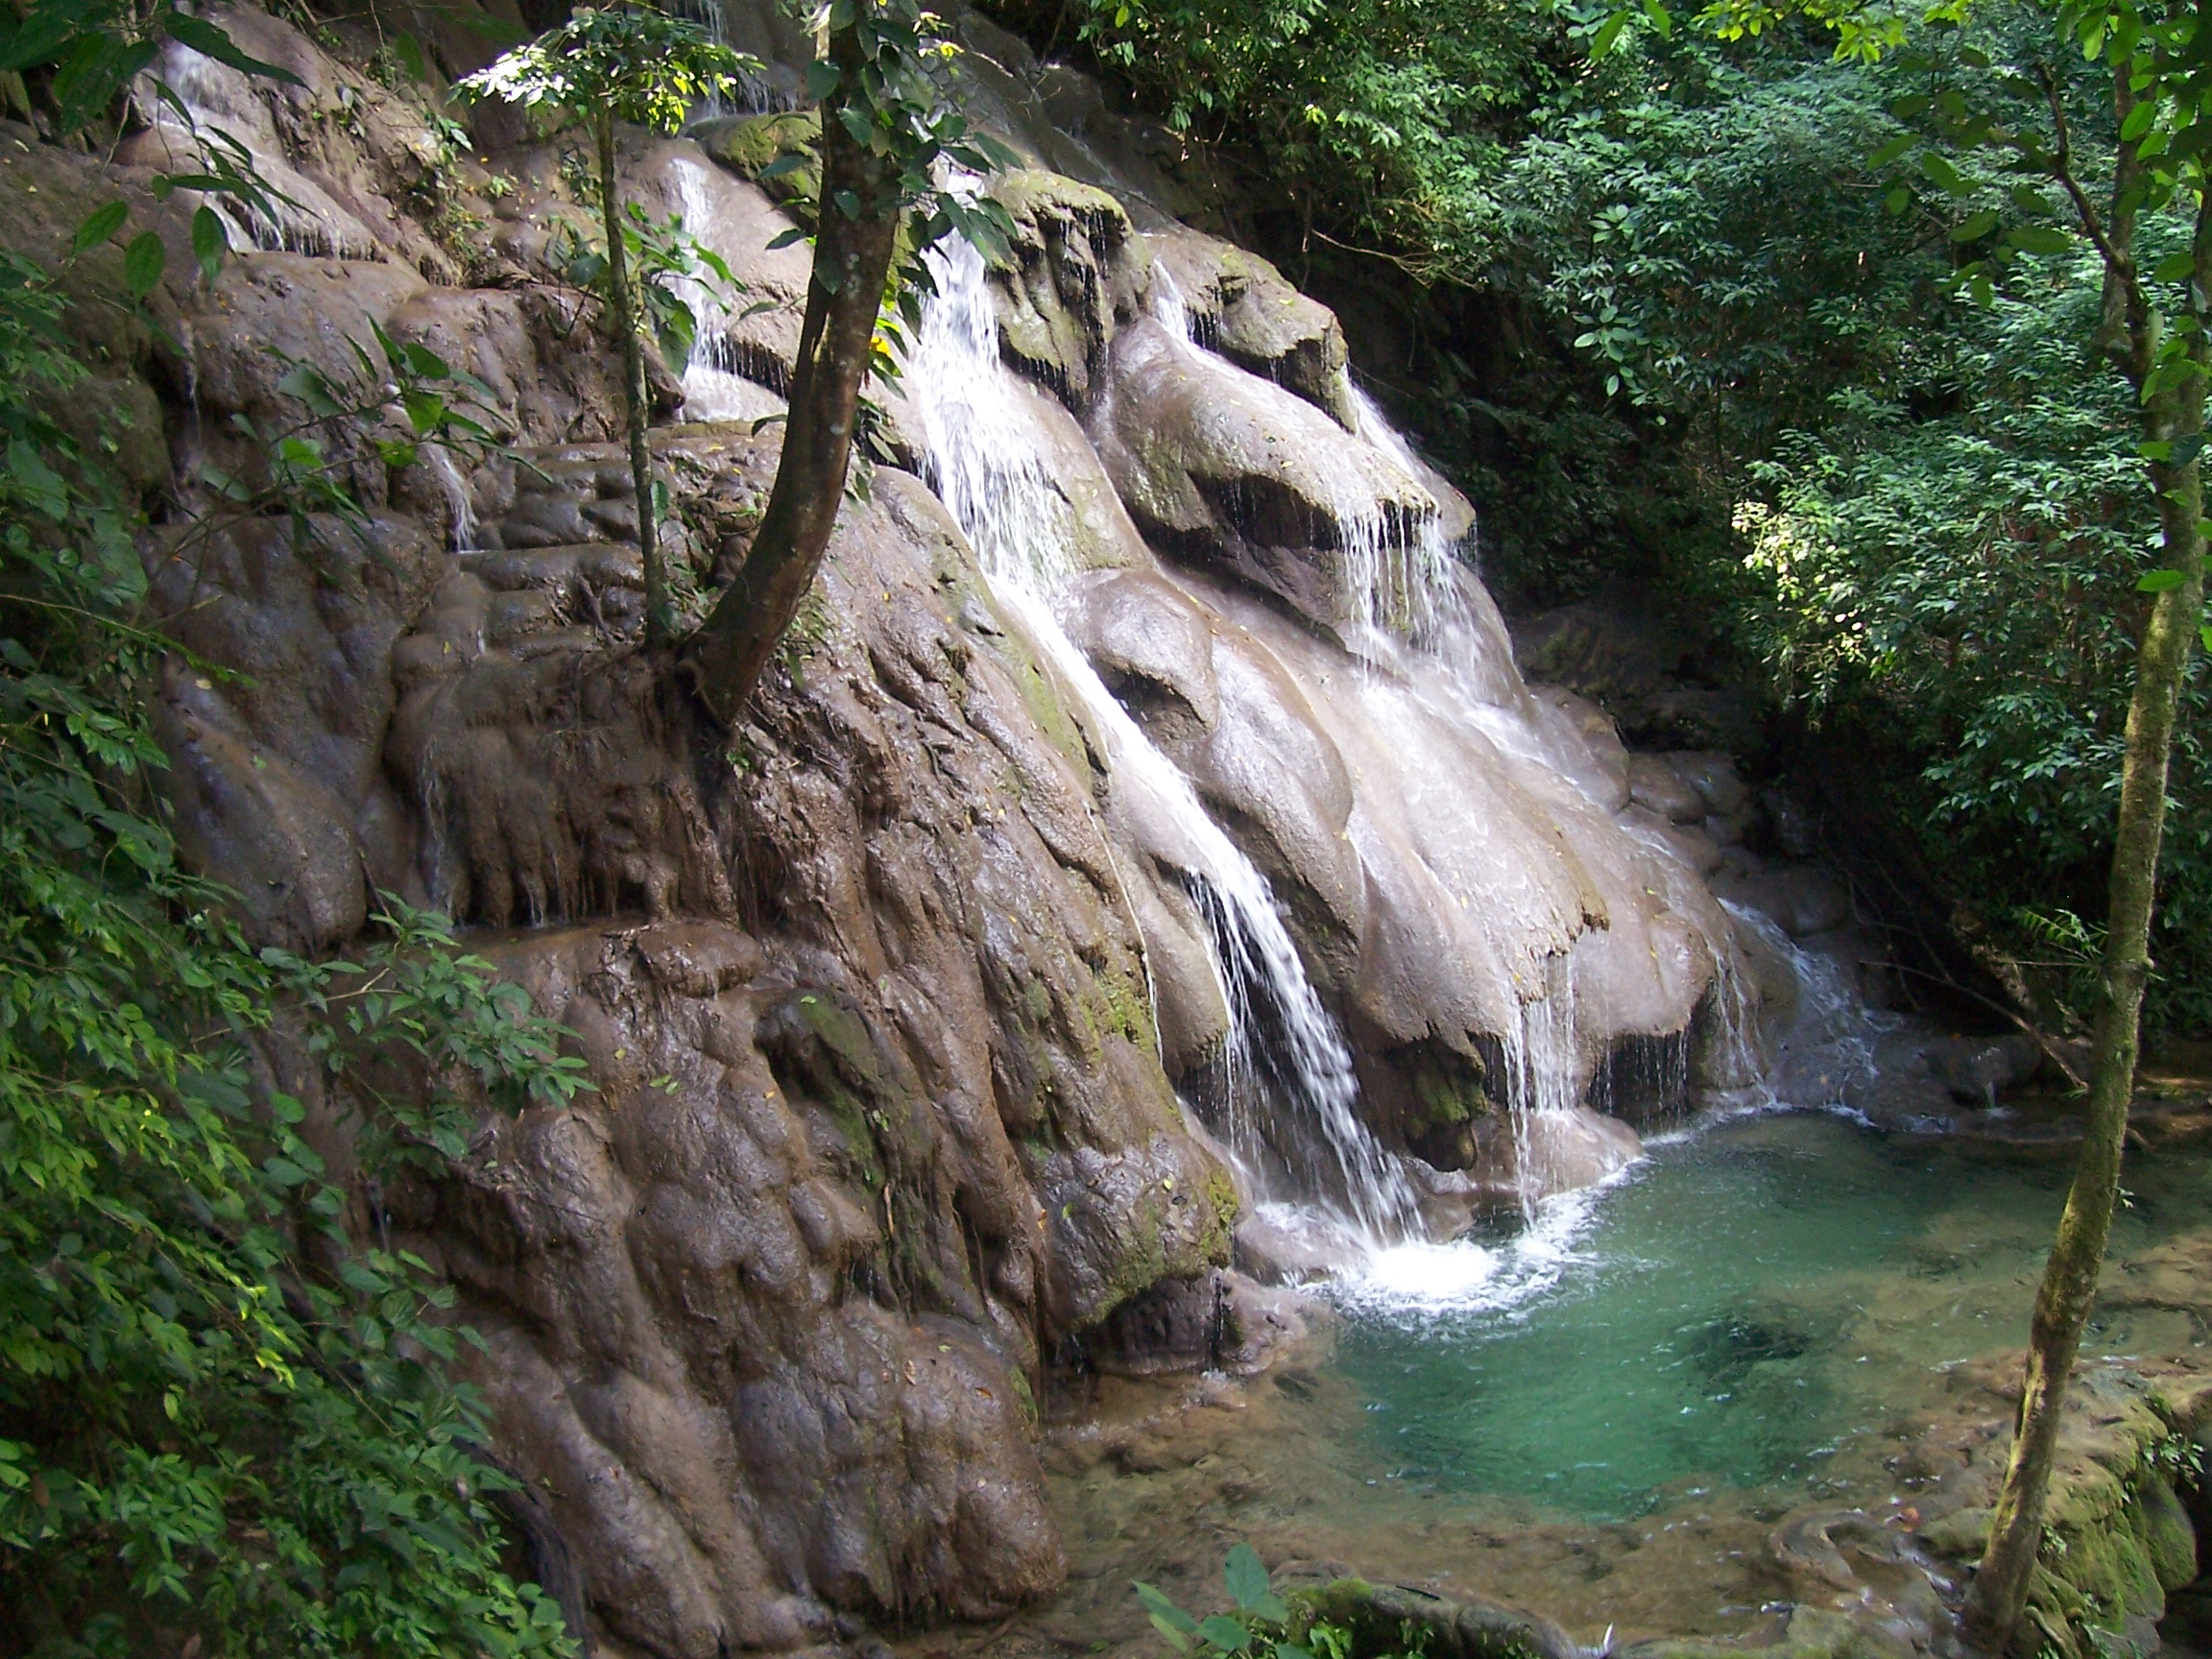 Waterfalls abound in the Palenque Ruins